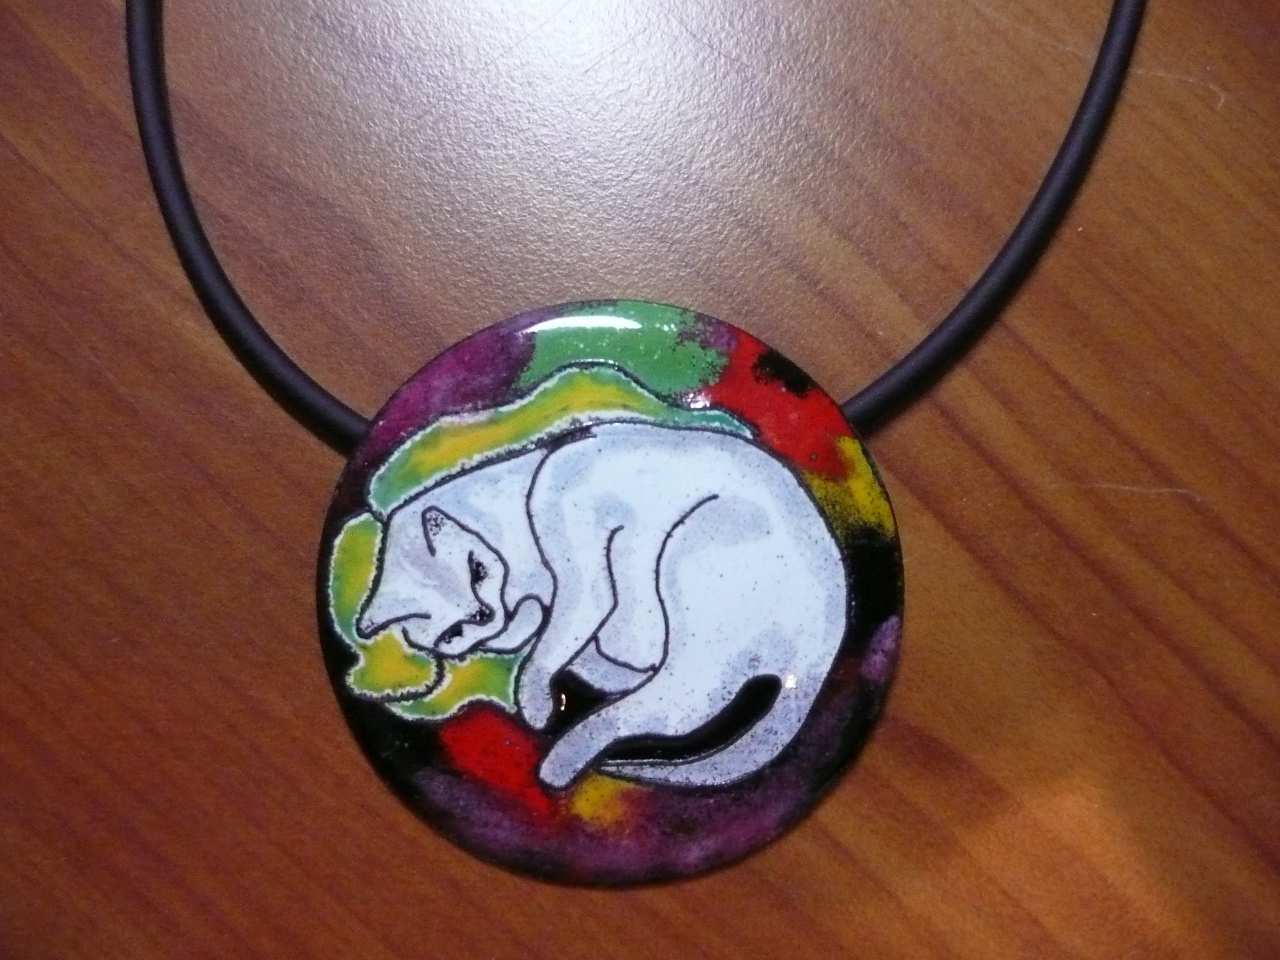 cloisonne met emaille